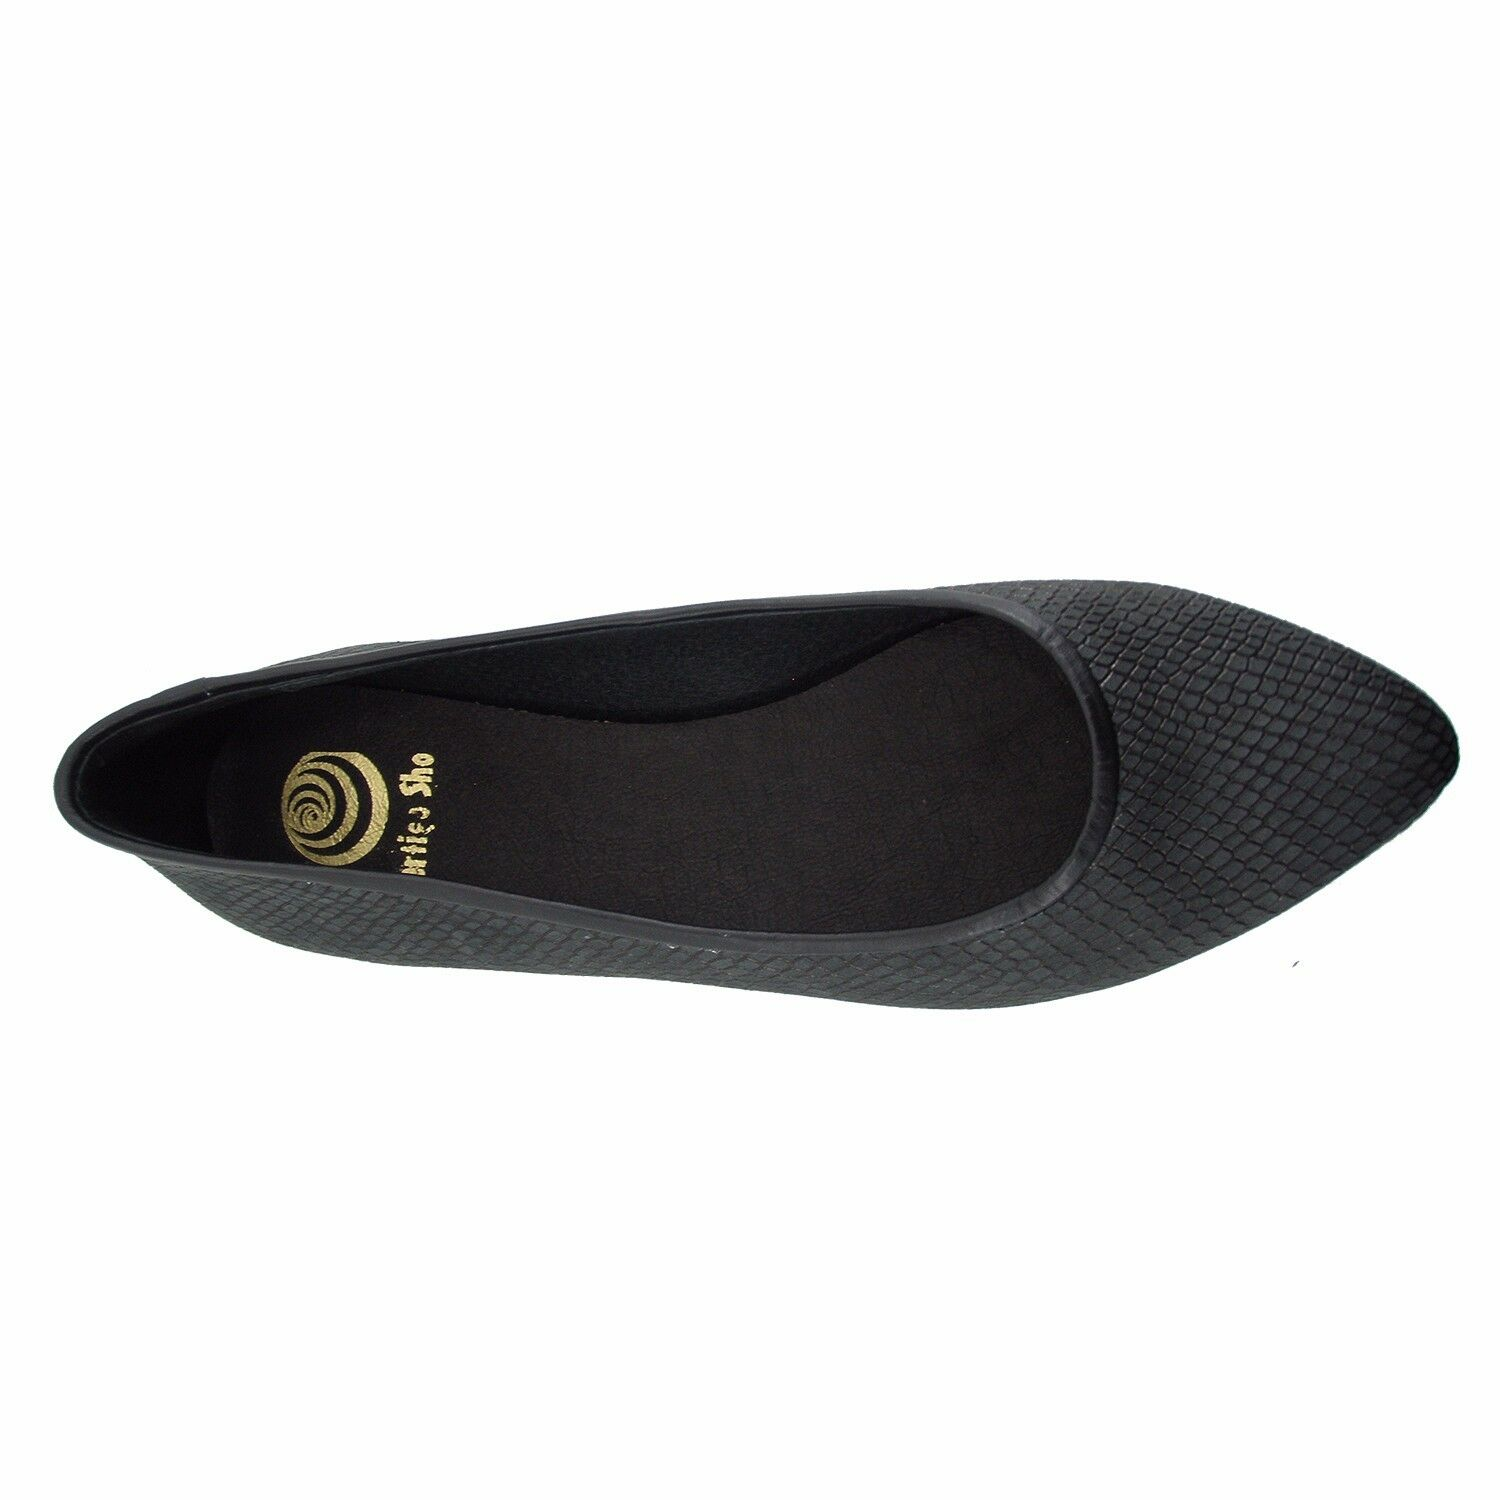 Size 8 Women's Black Leather Point Toe Ballet Flats MADE IN SPAIN